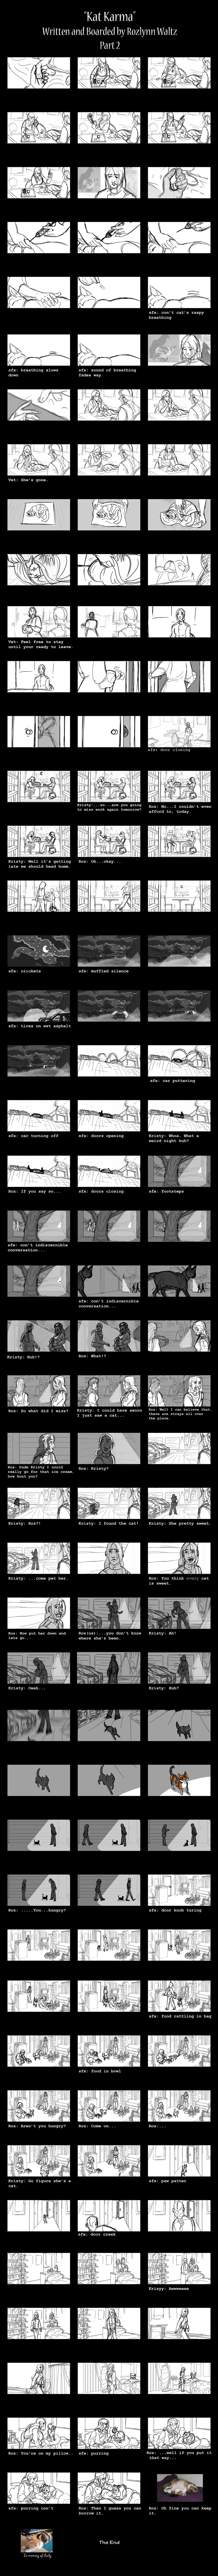 Kat Karma - storyboards - Part 2 by RozlynnWaltz